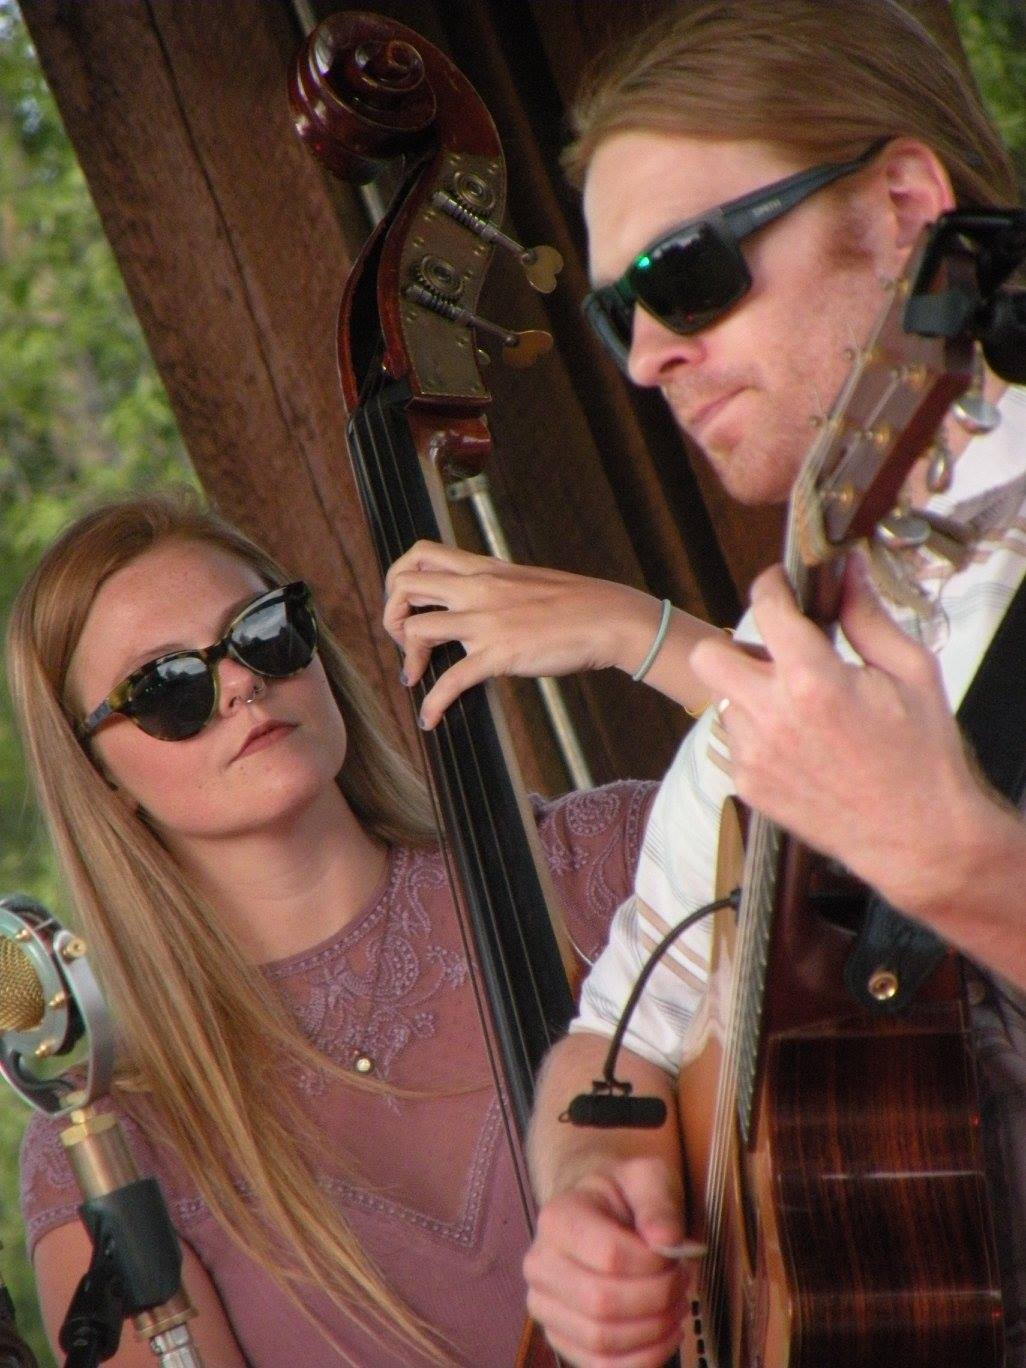 Pinedale, Wyoming summer concert series!